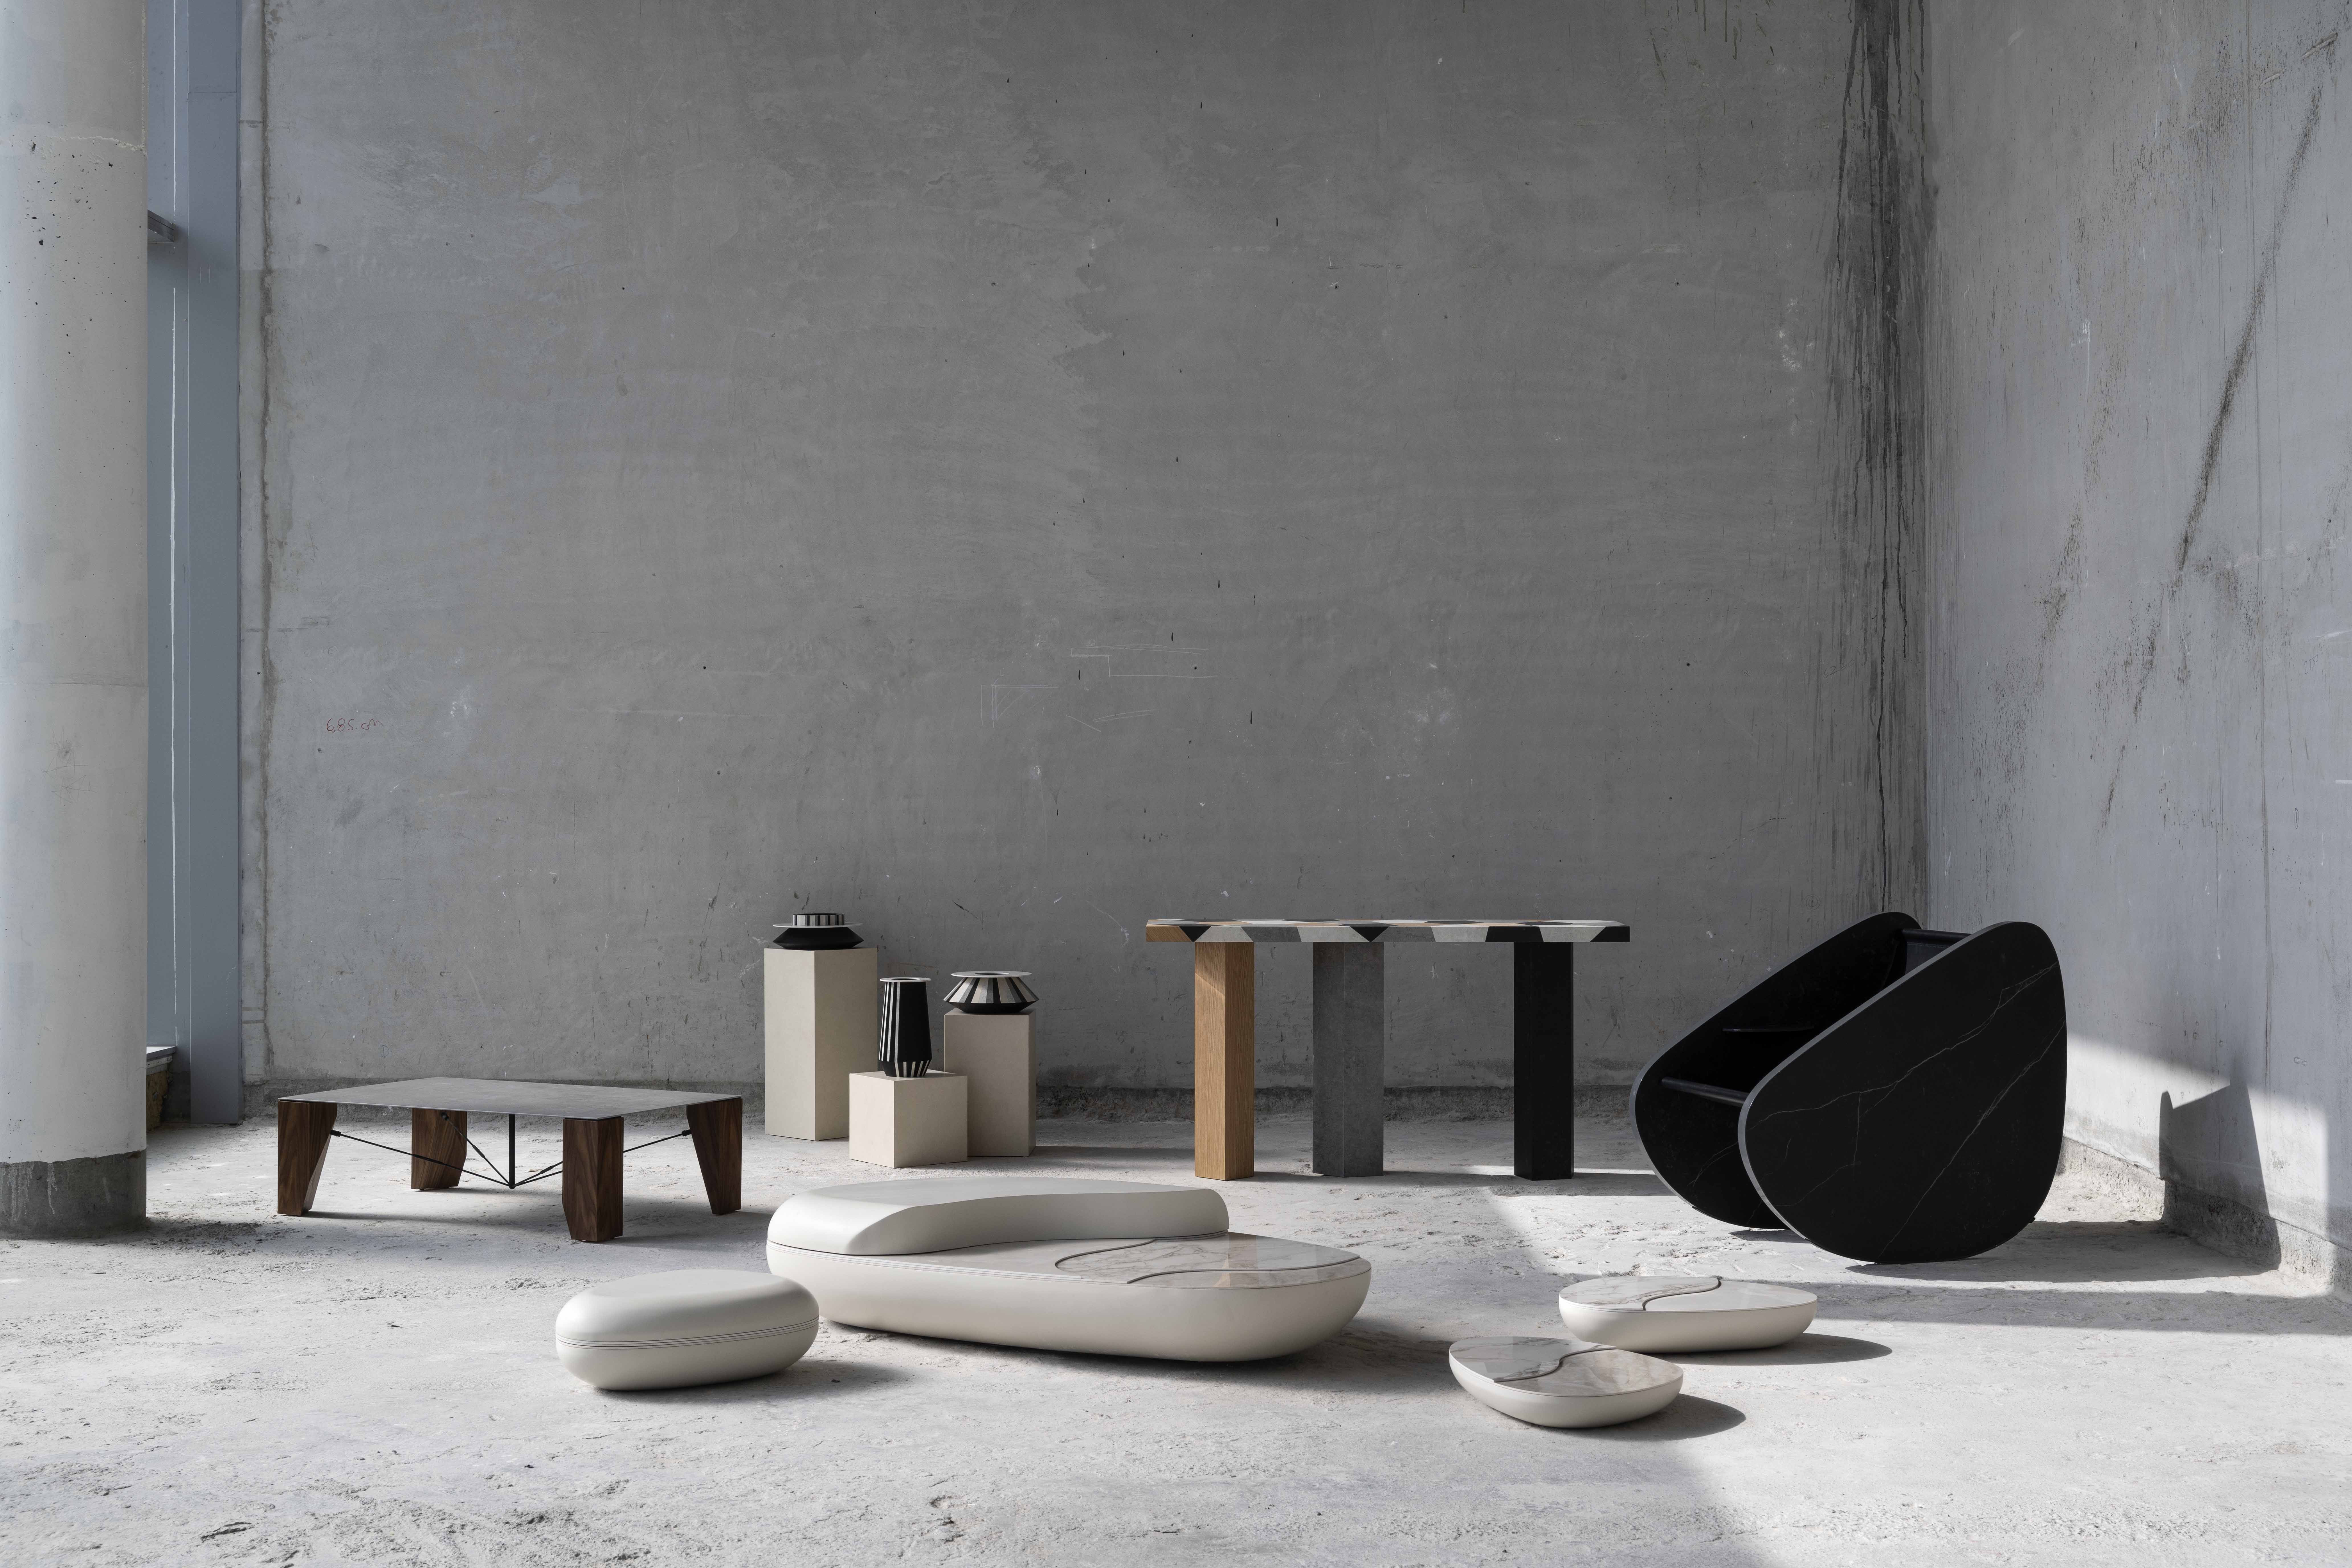 Image of CosentinoCapsuleCollection NateleeCocks in Cosentino unveils Capsule Collection - Cosentino